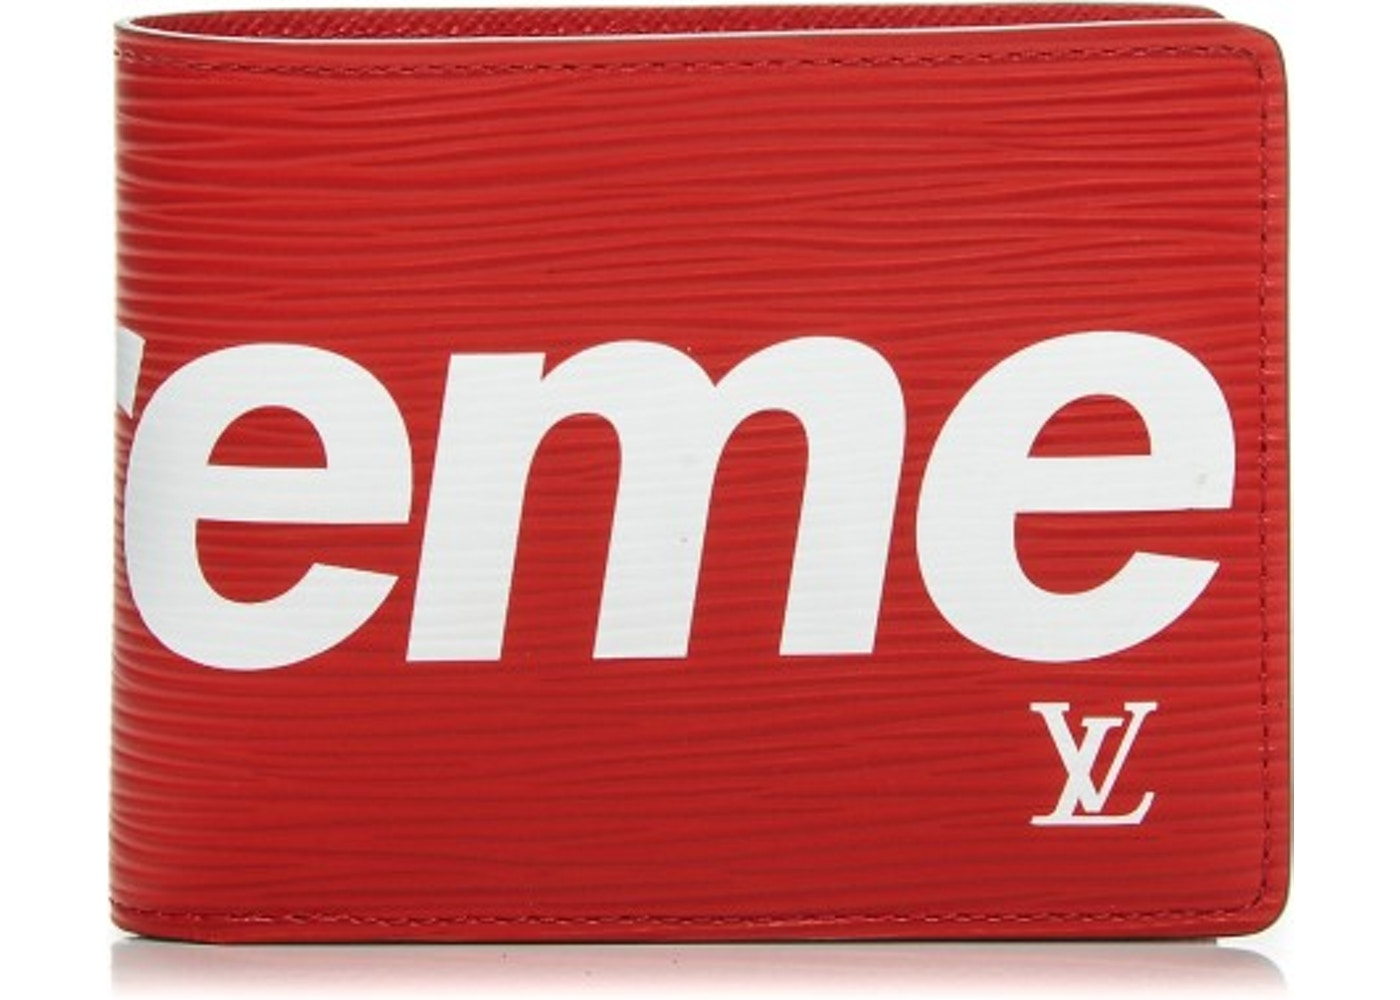 0a499553563c Louis Vuitton x Supreme Slender Wallet Epi Red. Epi Red